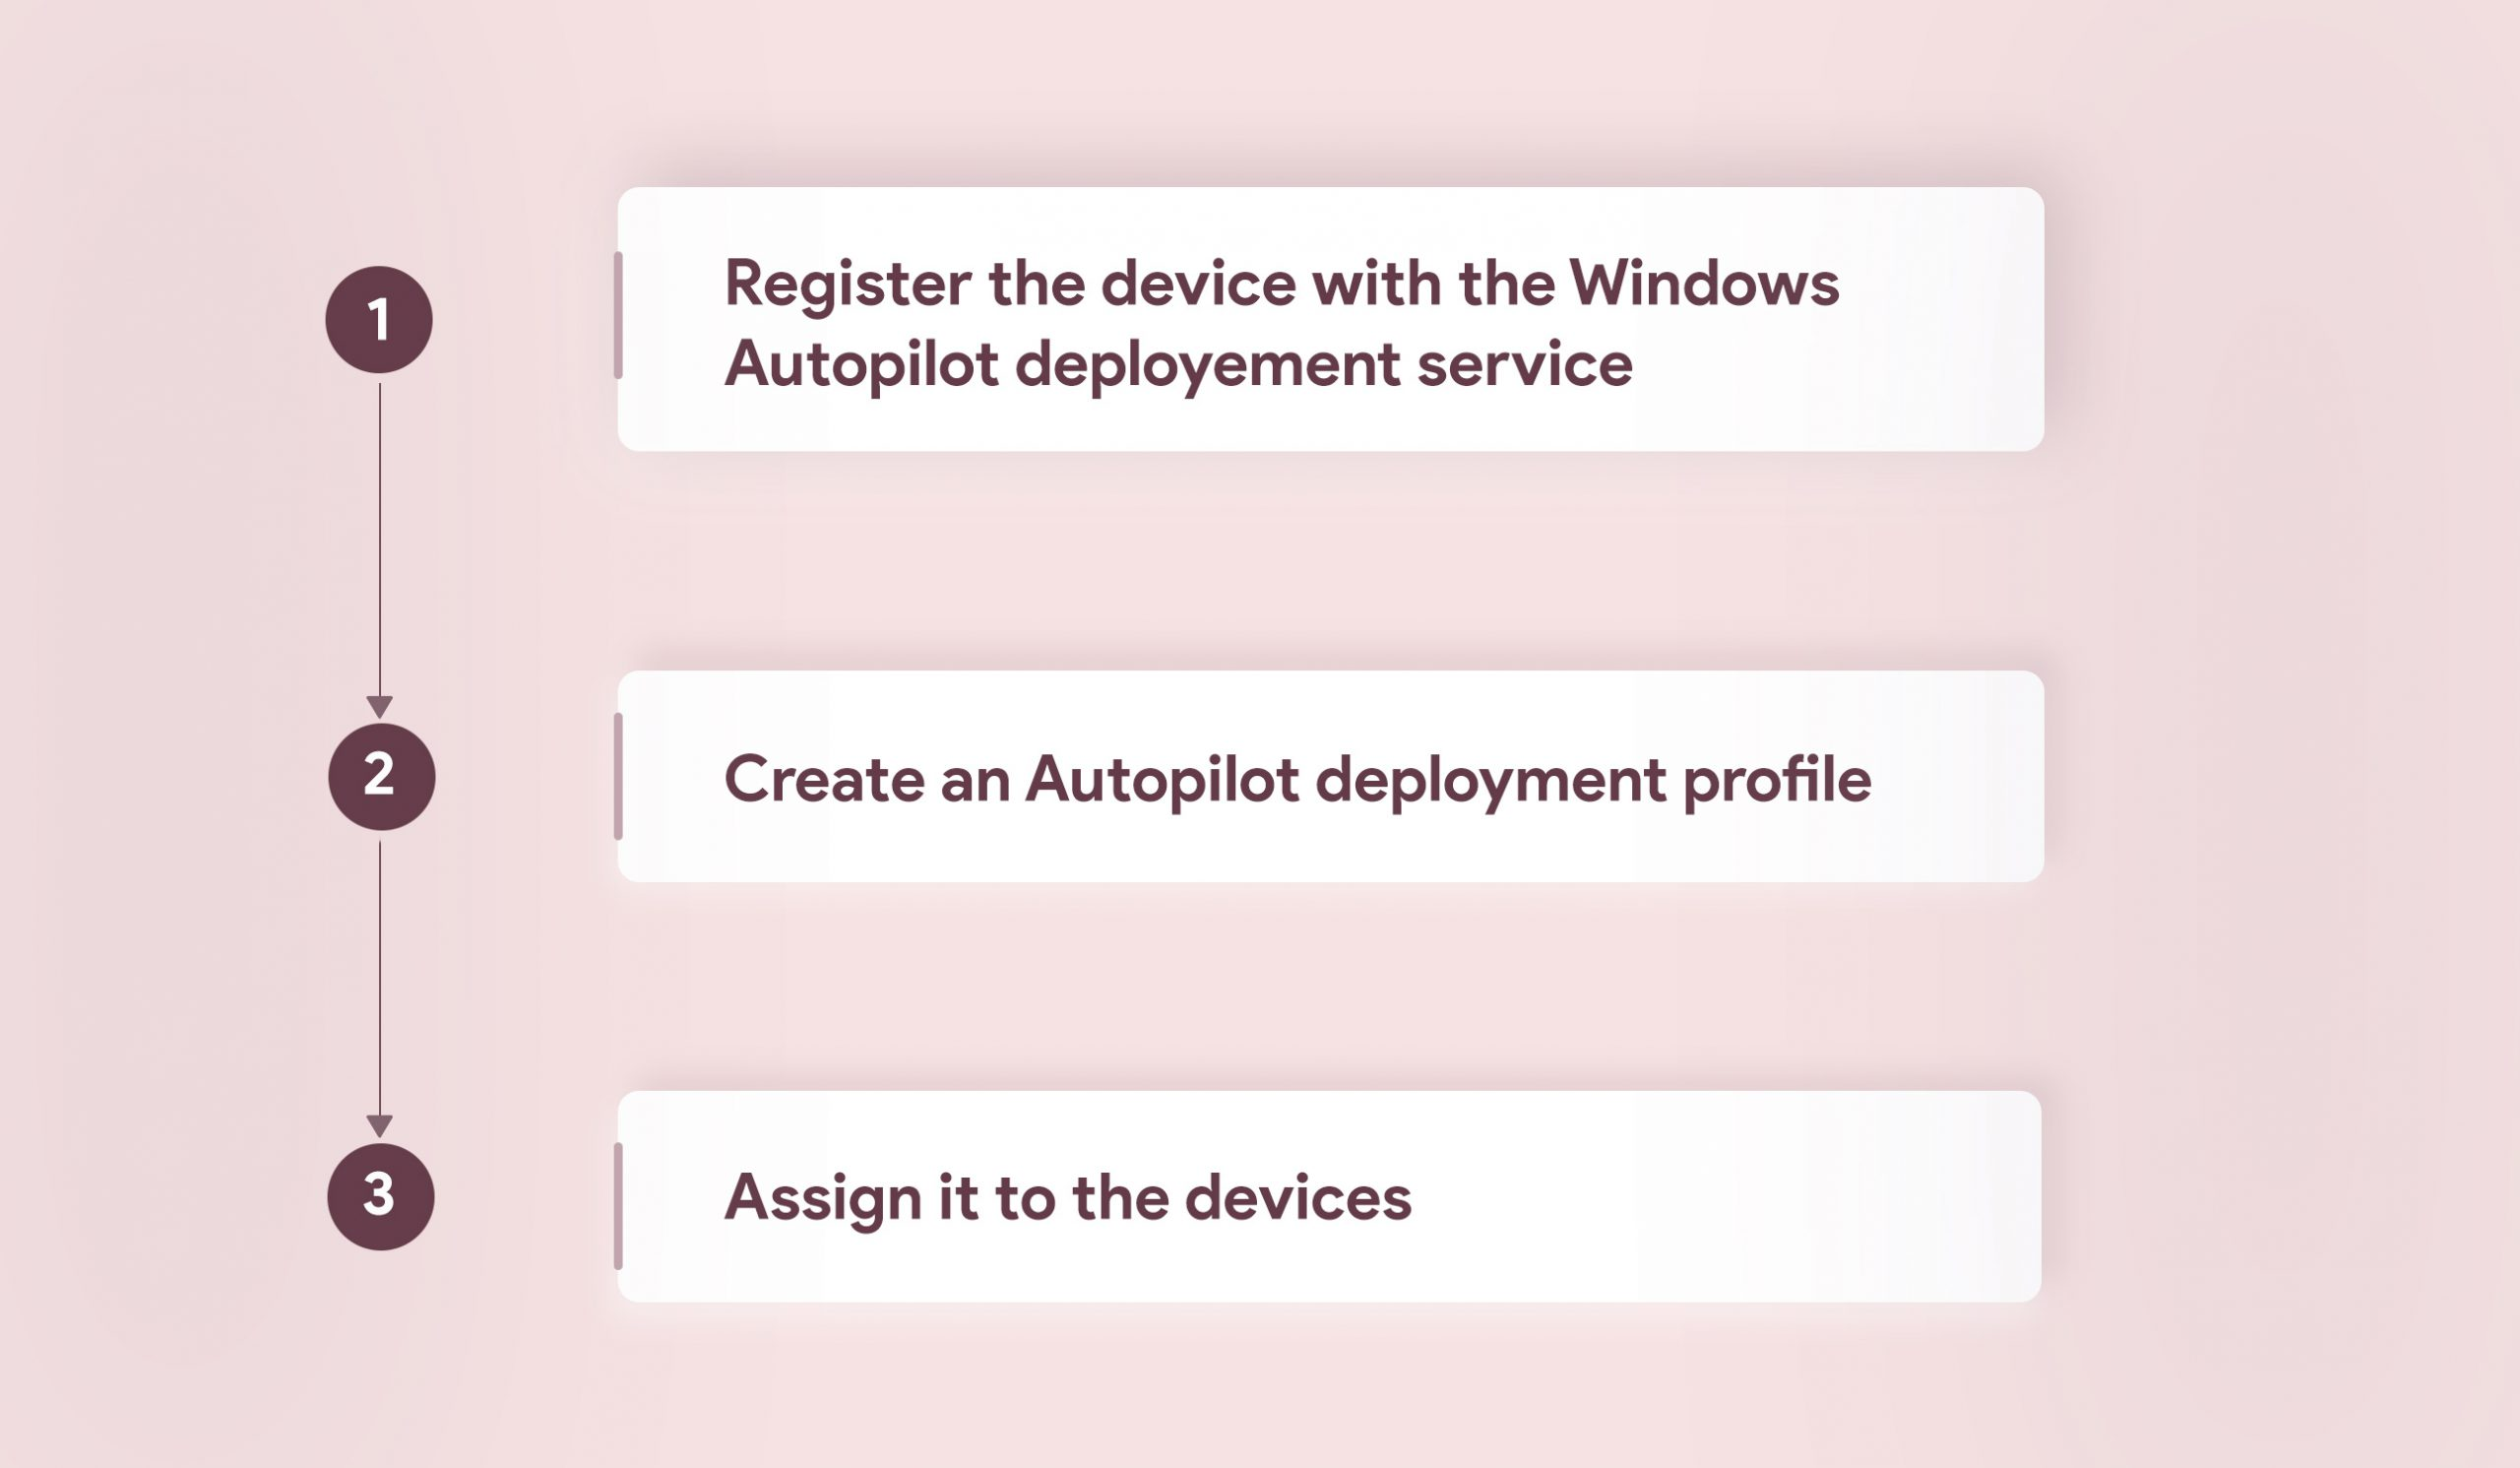 Deploying Windows 10 devices via Windows Autopilot